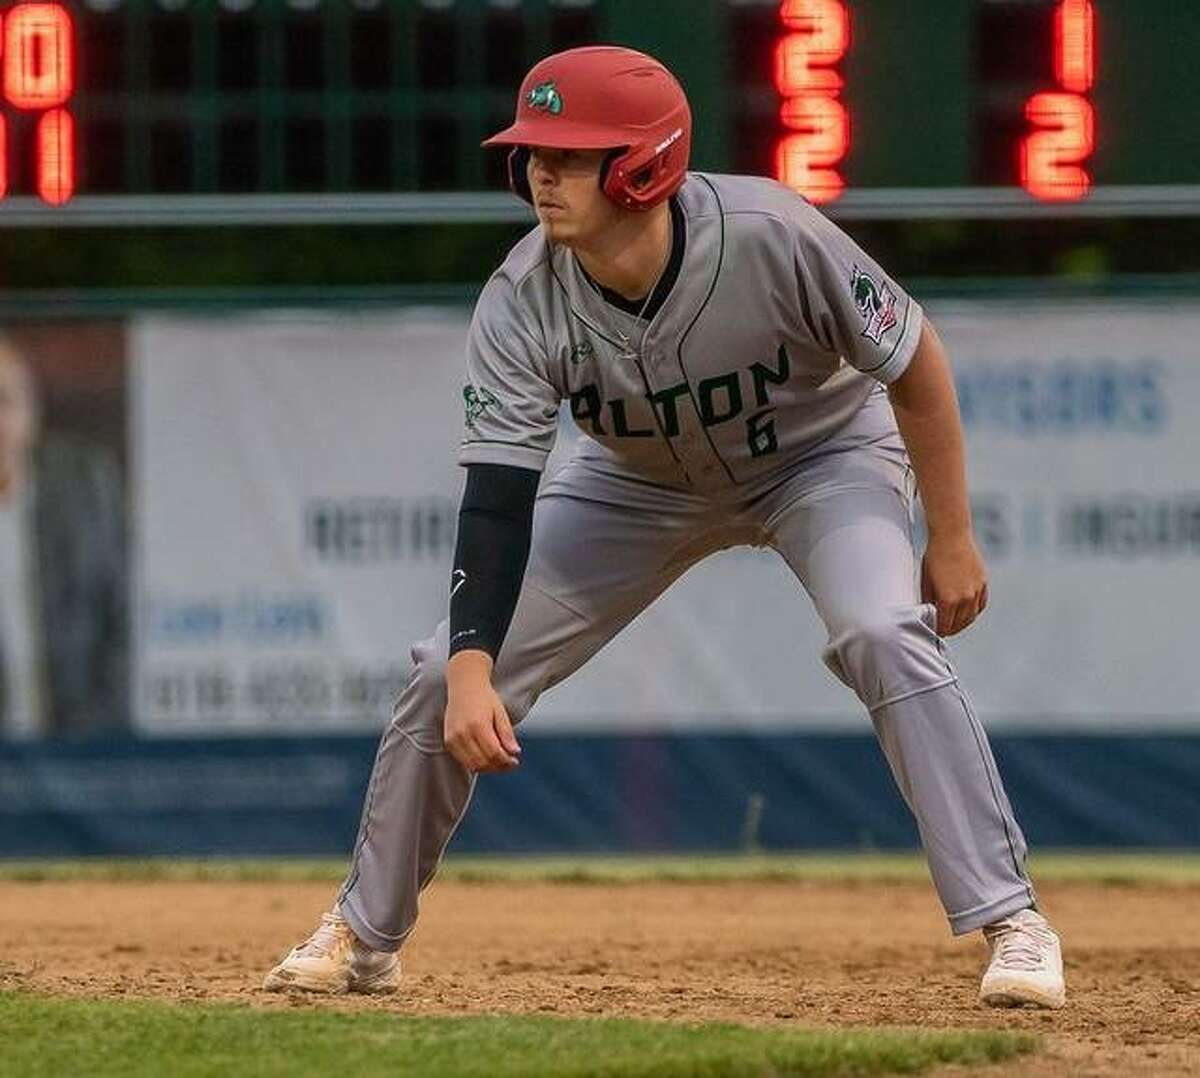 Alton High grad and Lewis and Clark Community College's Adam Stilts provided another quality pitching start for the Alton River Dragons, who won their second straight with an 11-6 win over the Gems in Prospect League play Friday night at Hopkins Field. He is shown running the bases in a recent game.